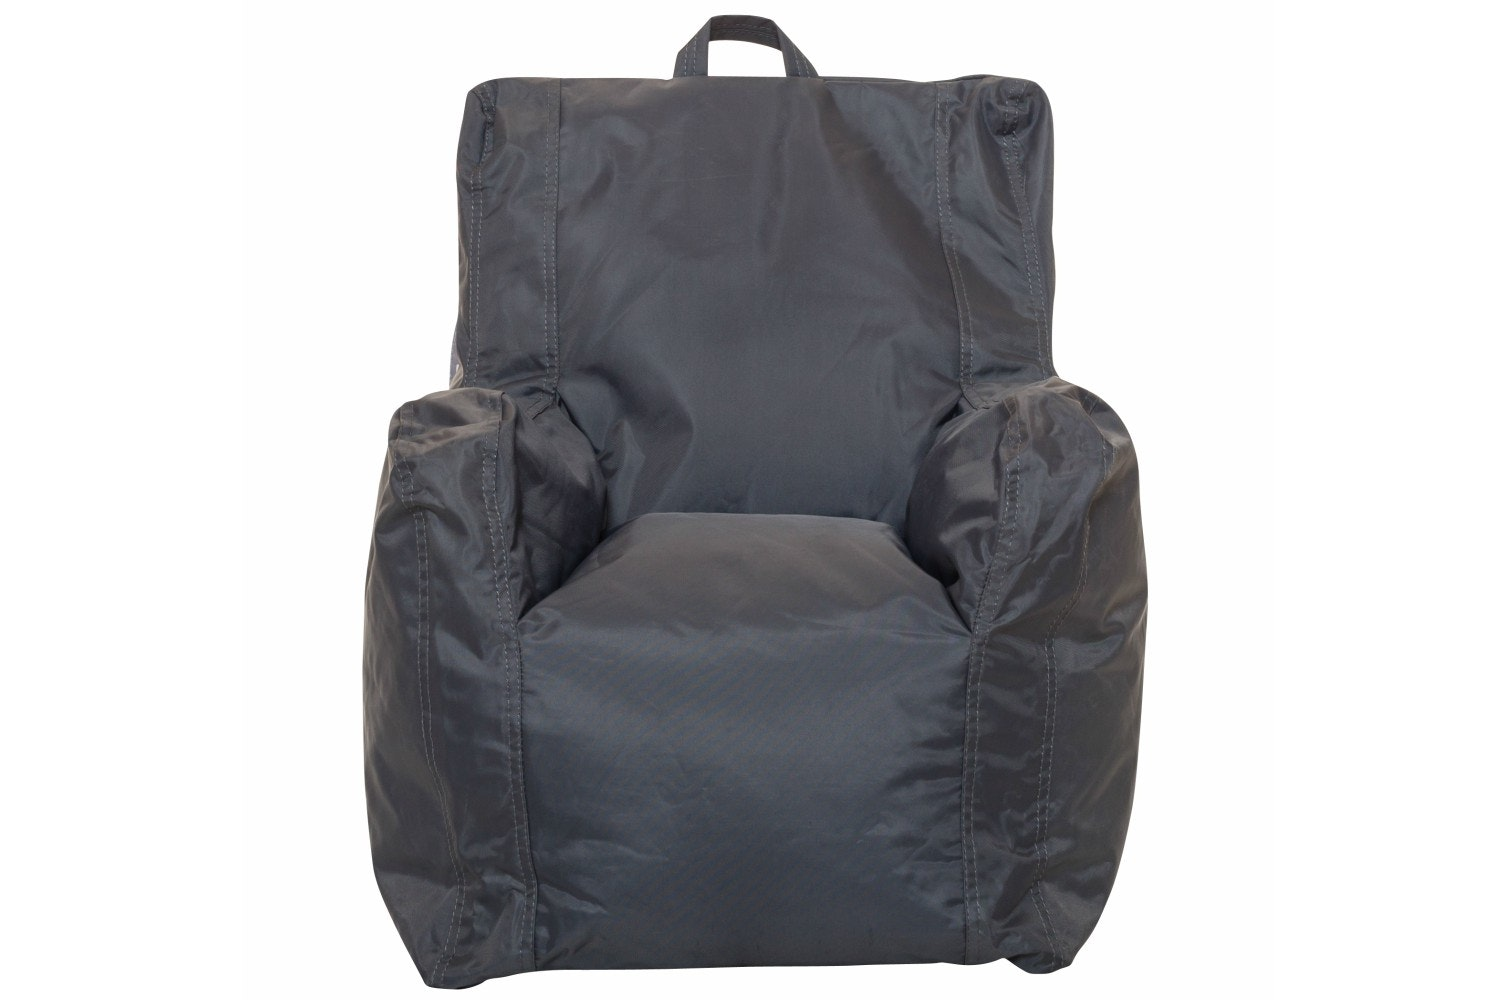 CHILLAX B/BAG KIDS ARM CHAIR GREY